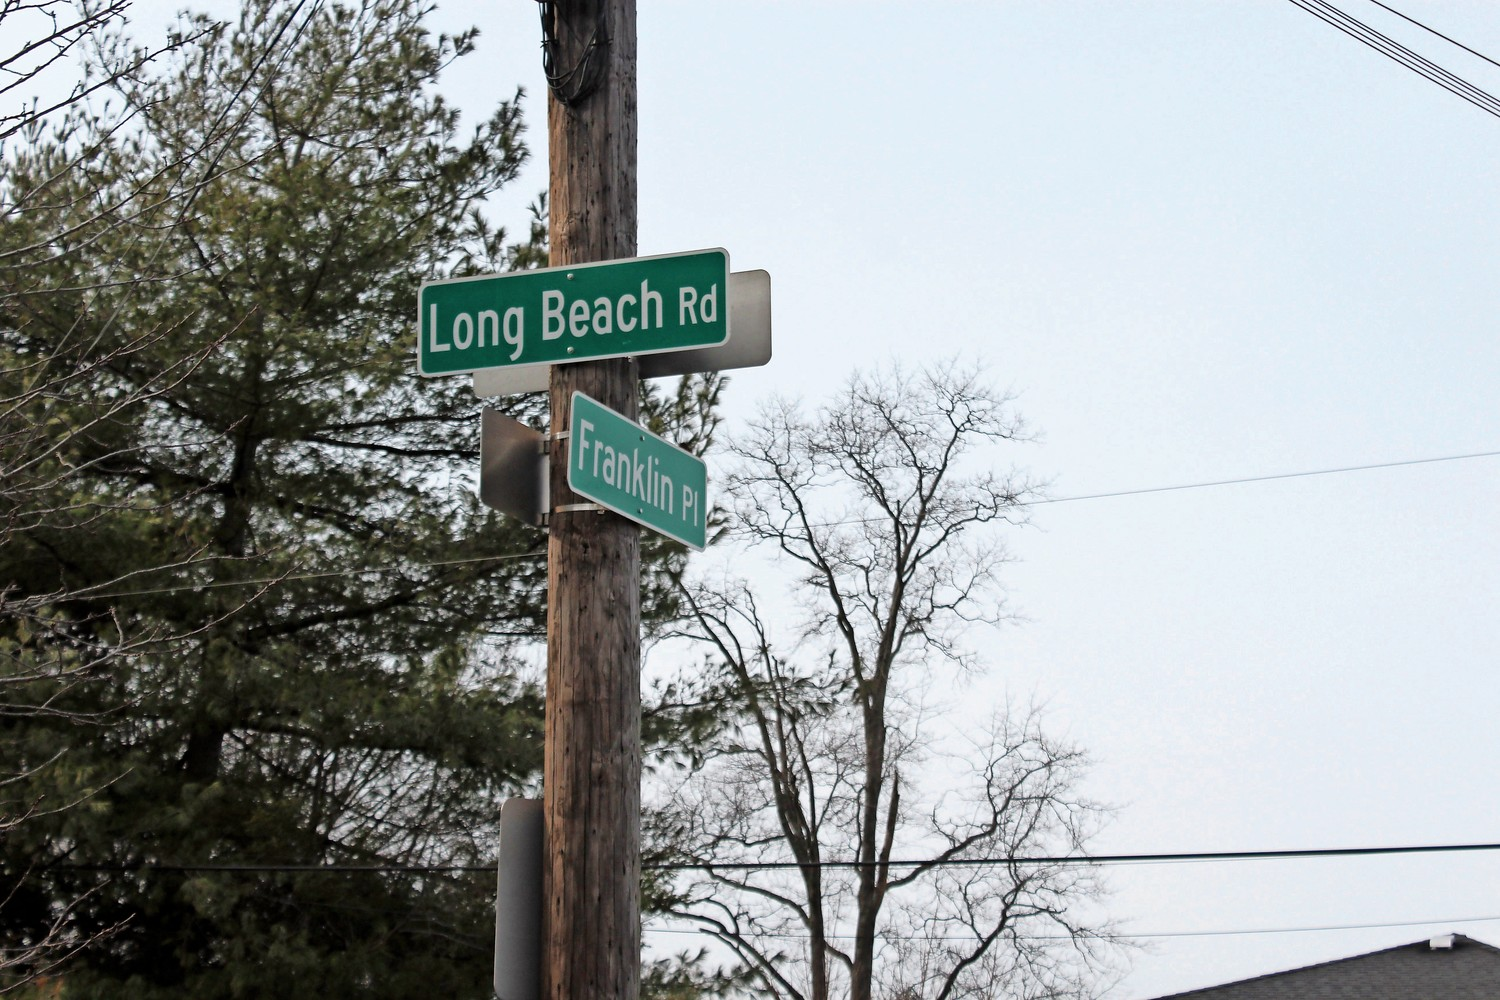 Residents who live on the corner of Long Beach Road and Franklin Place have asked the county to inspect deteriorating road conditions.